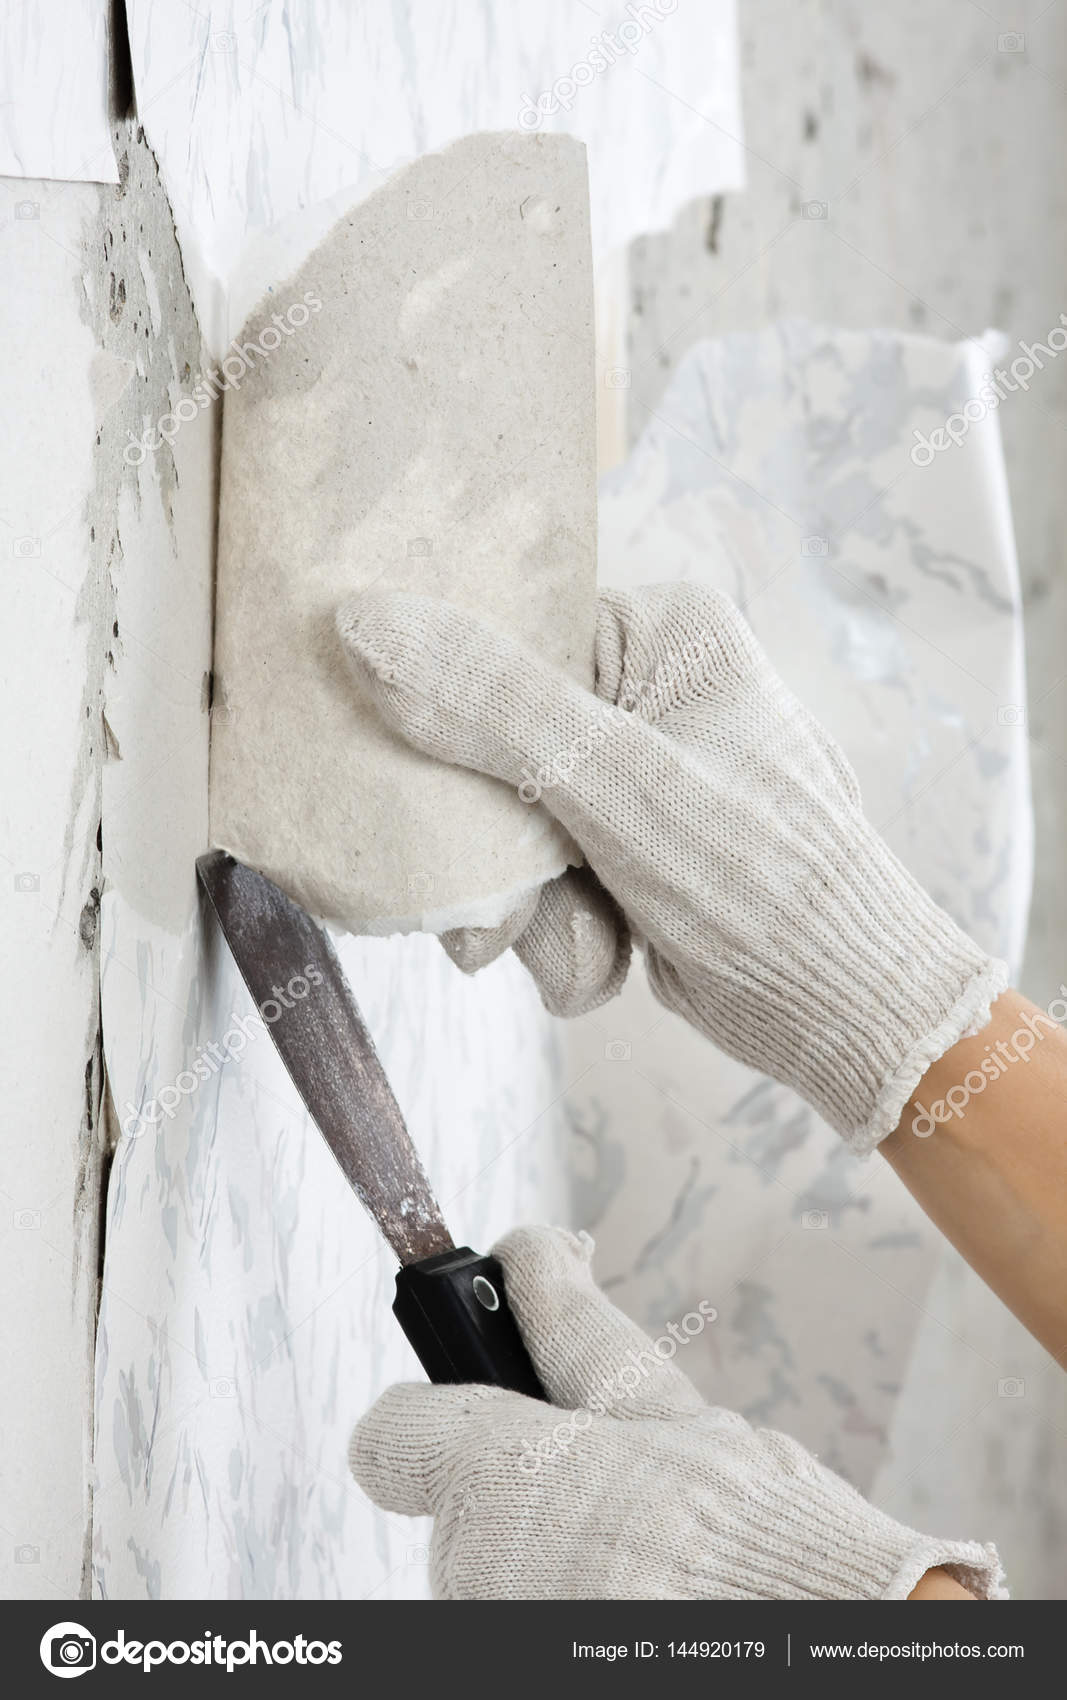 Hand Removing Old Wallpaper From Wall With Spatula Stock Photo